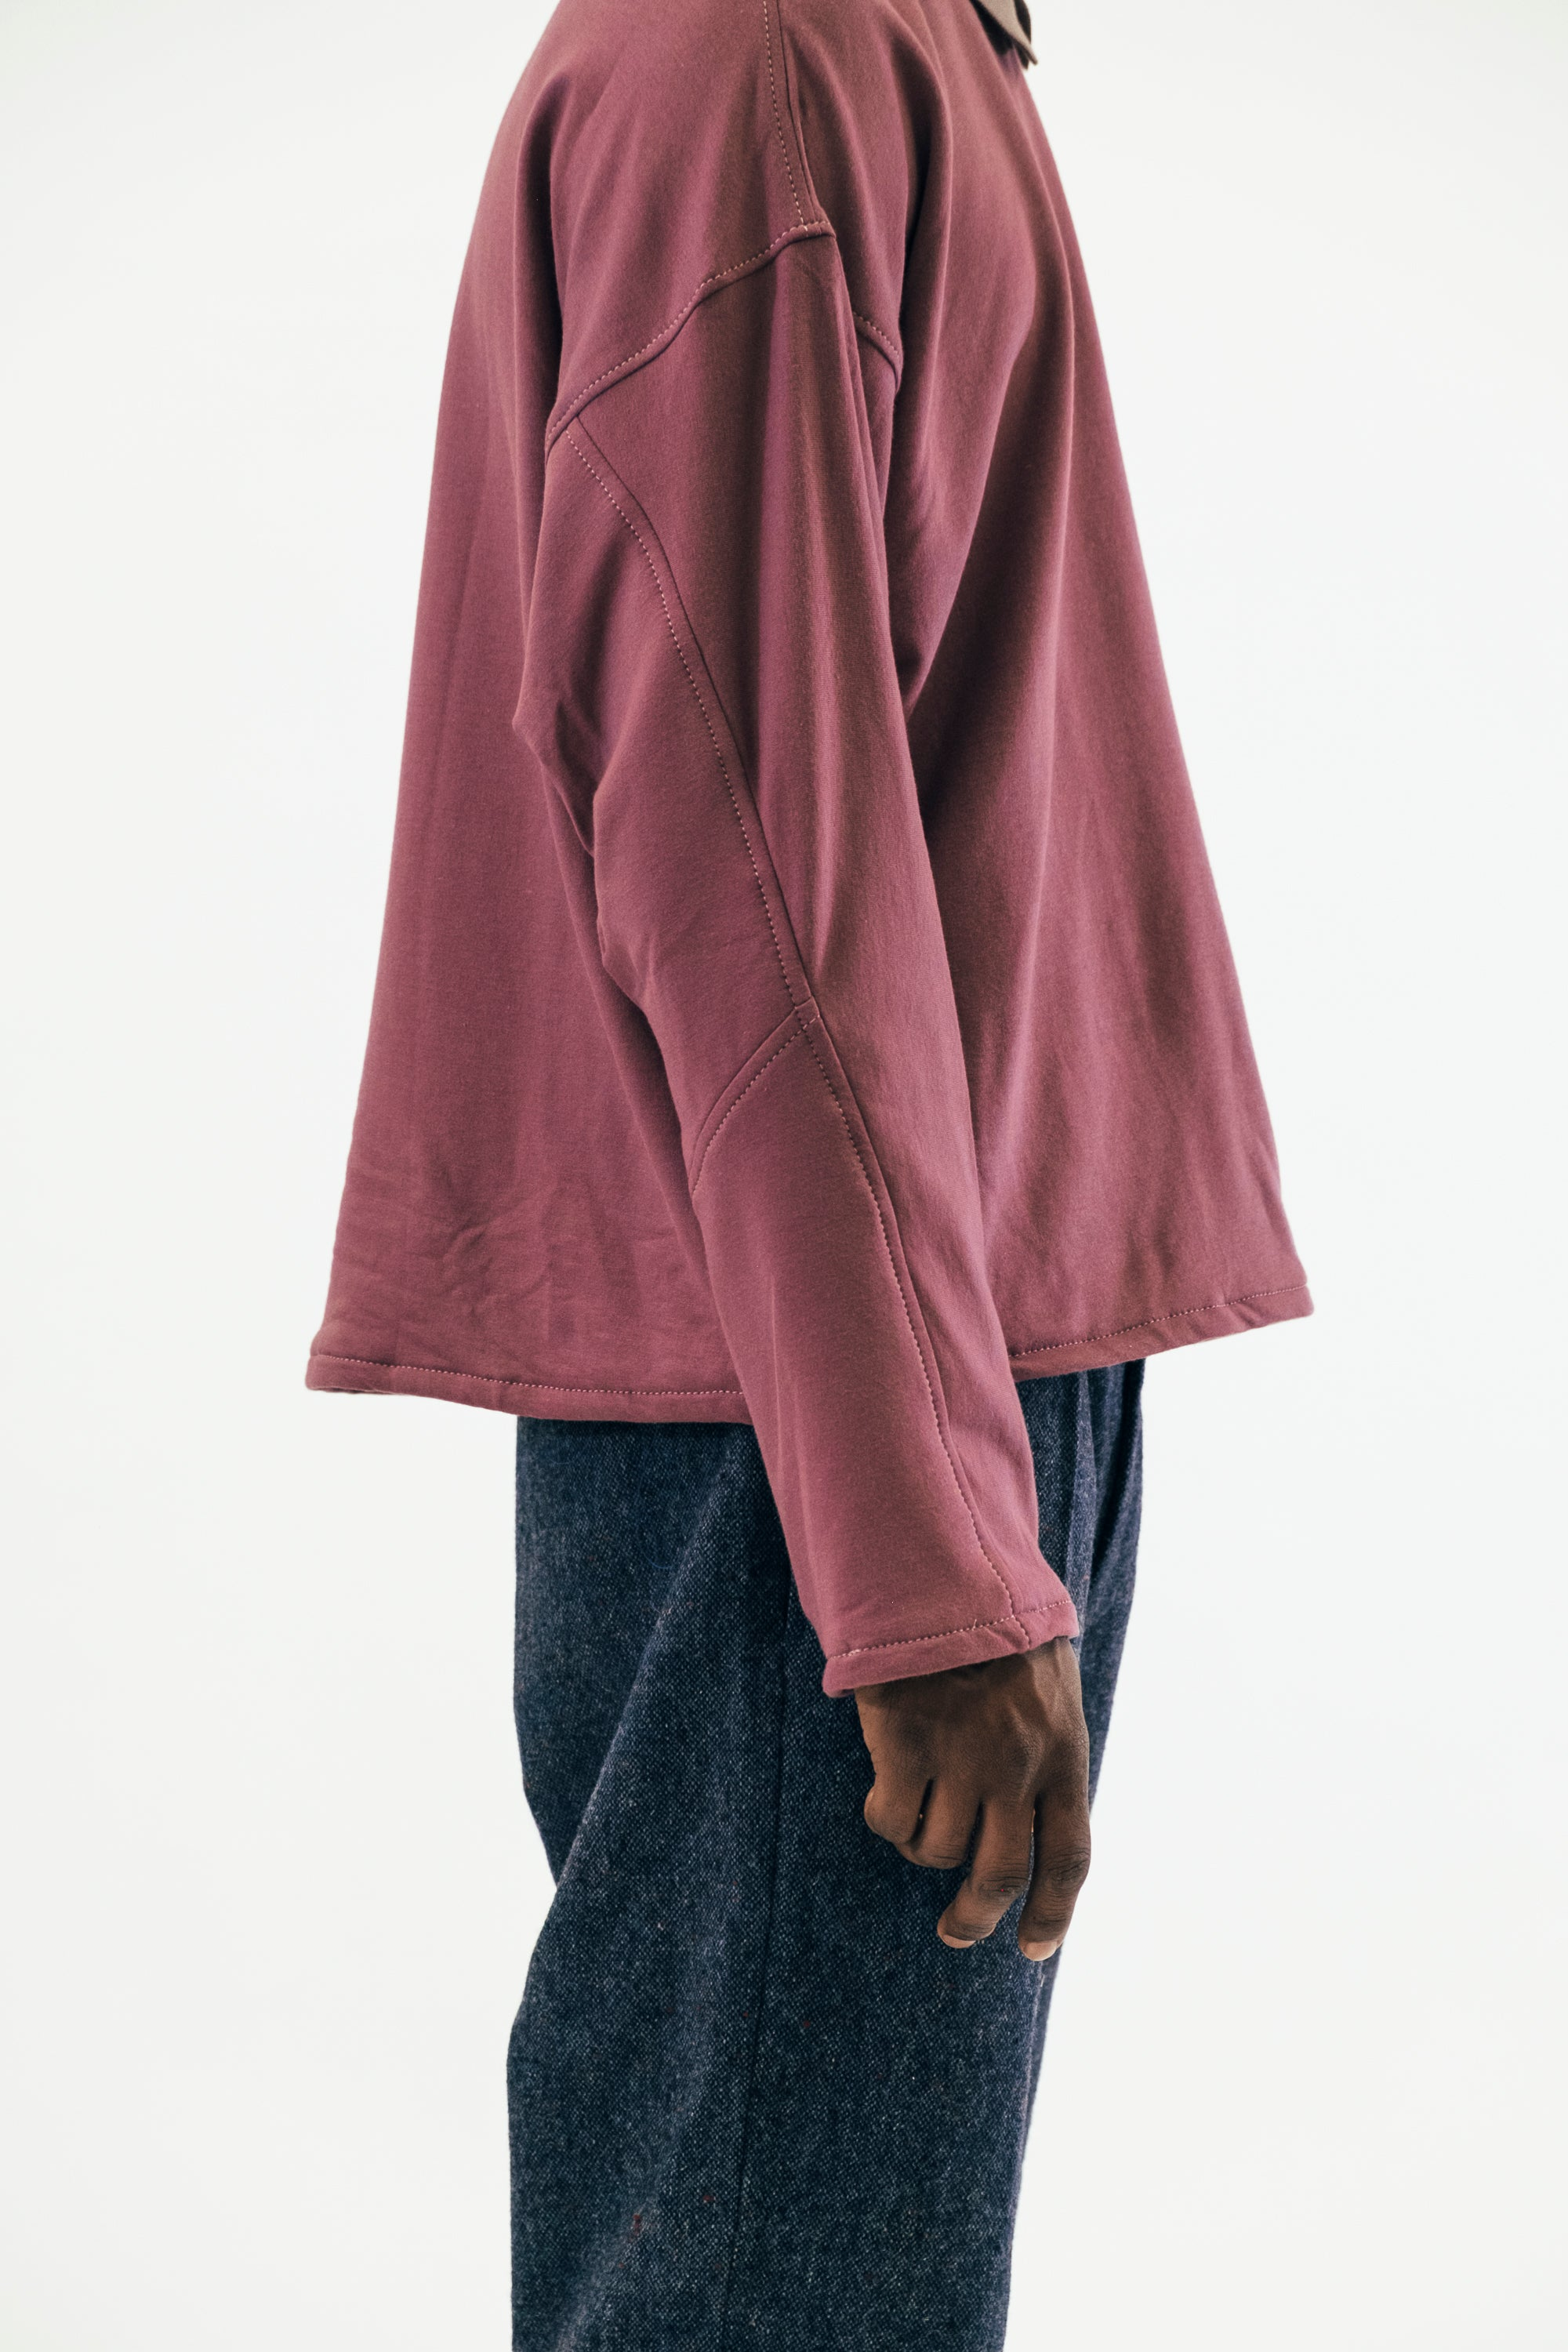 Collared Crewneck in Heathered Rose